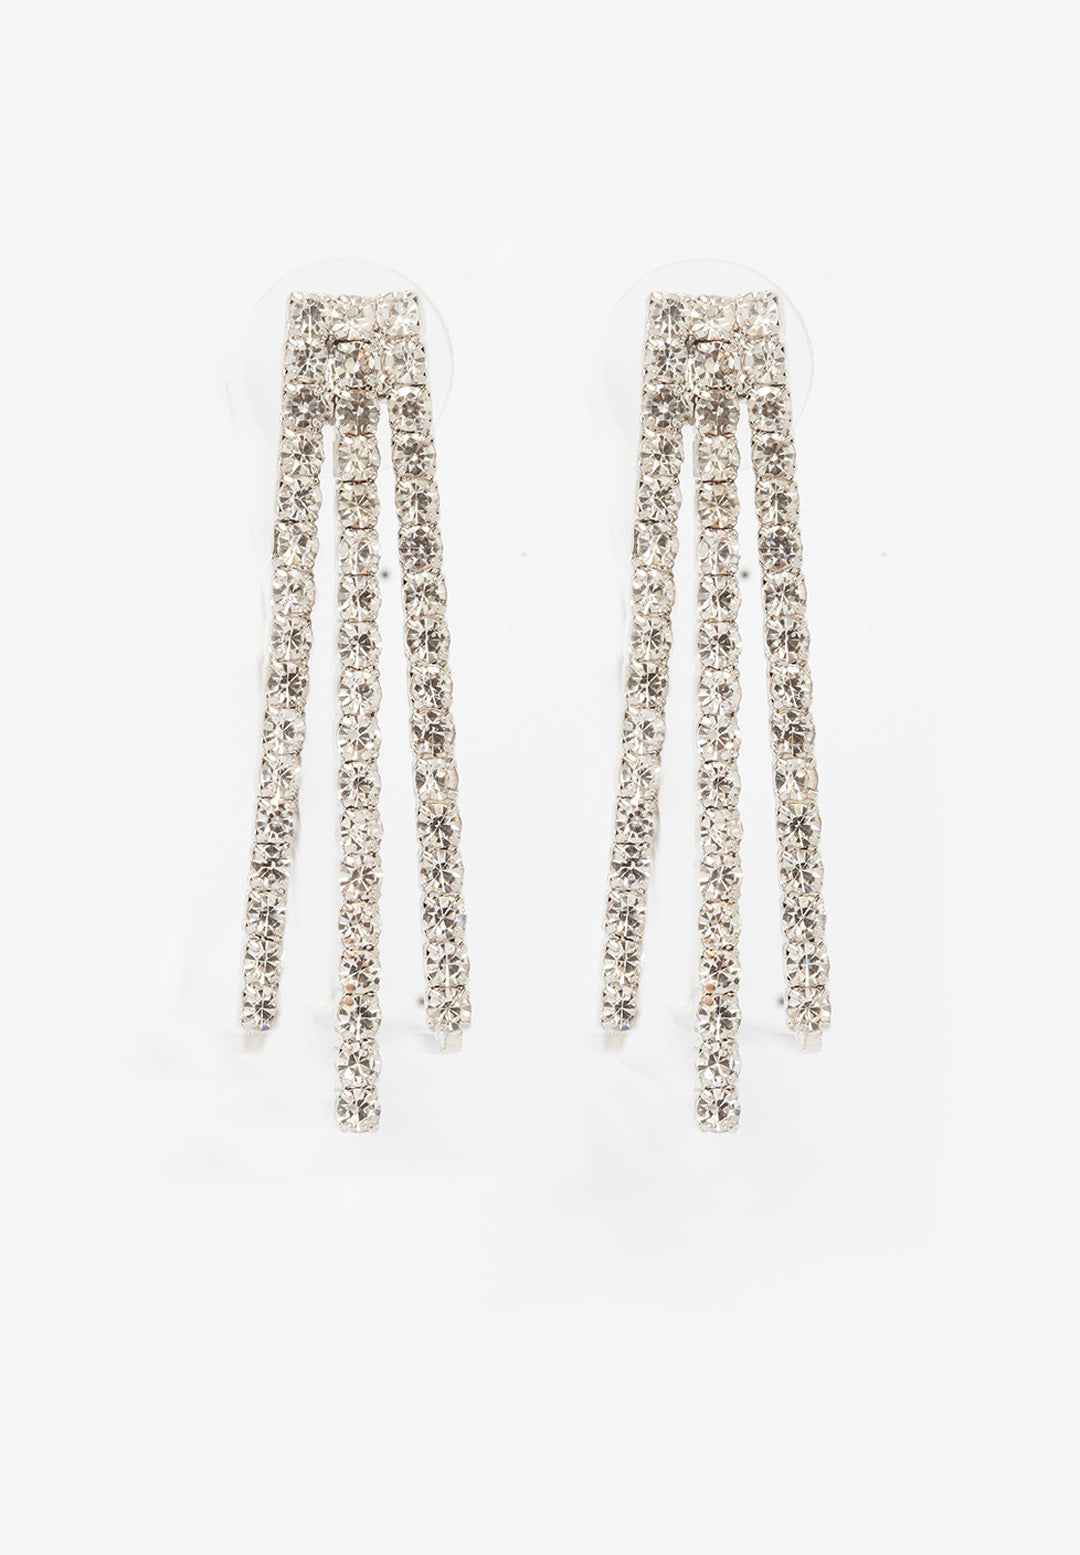 Avant-Garde Paris Sleek Gold-Plated Crystal Hoops